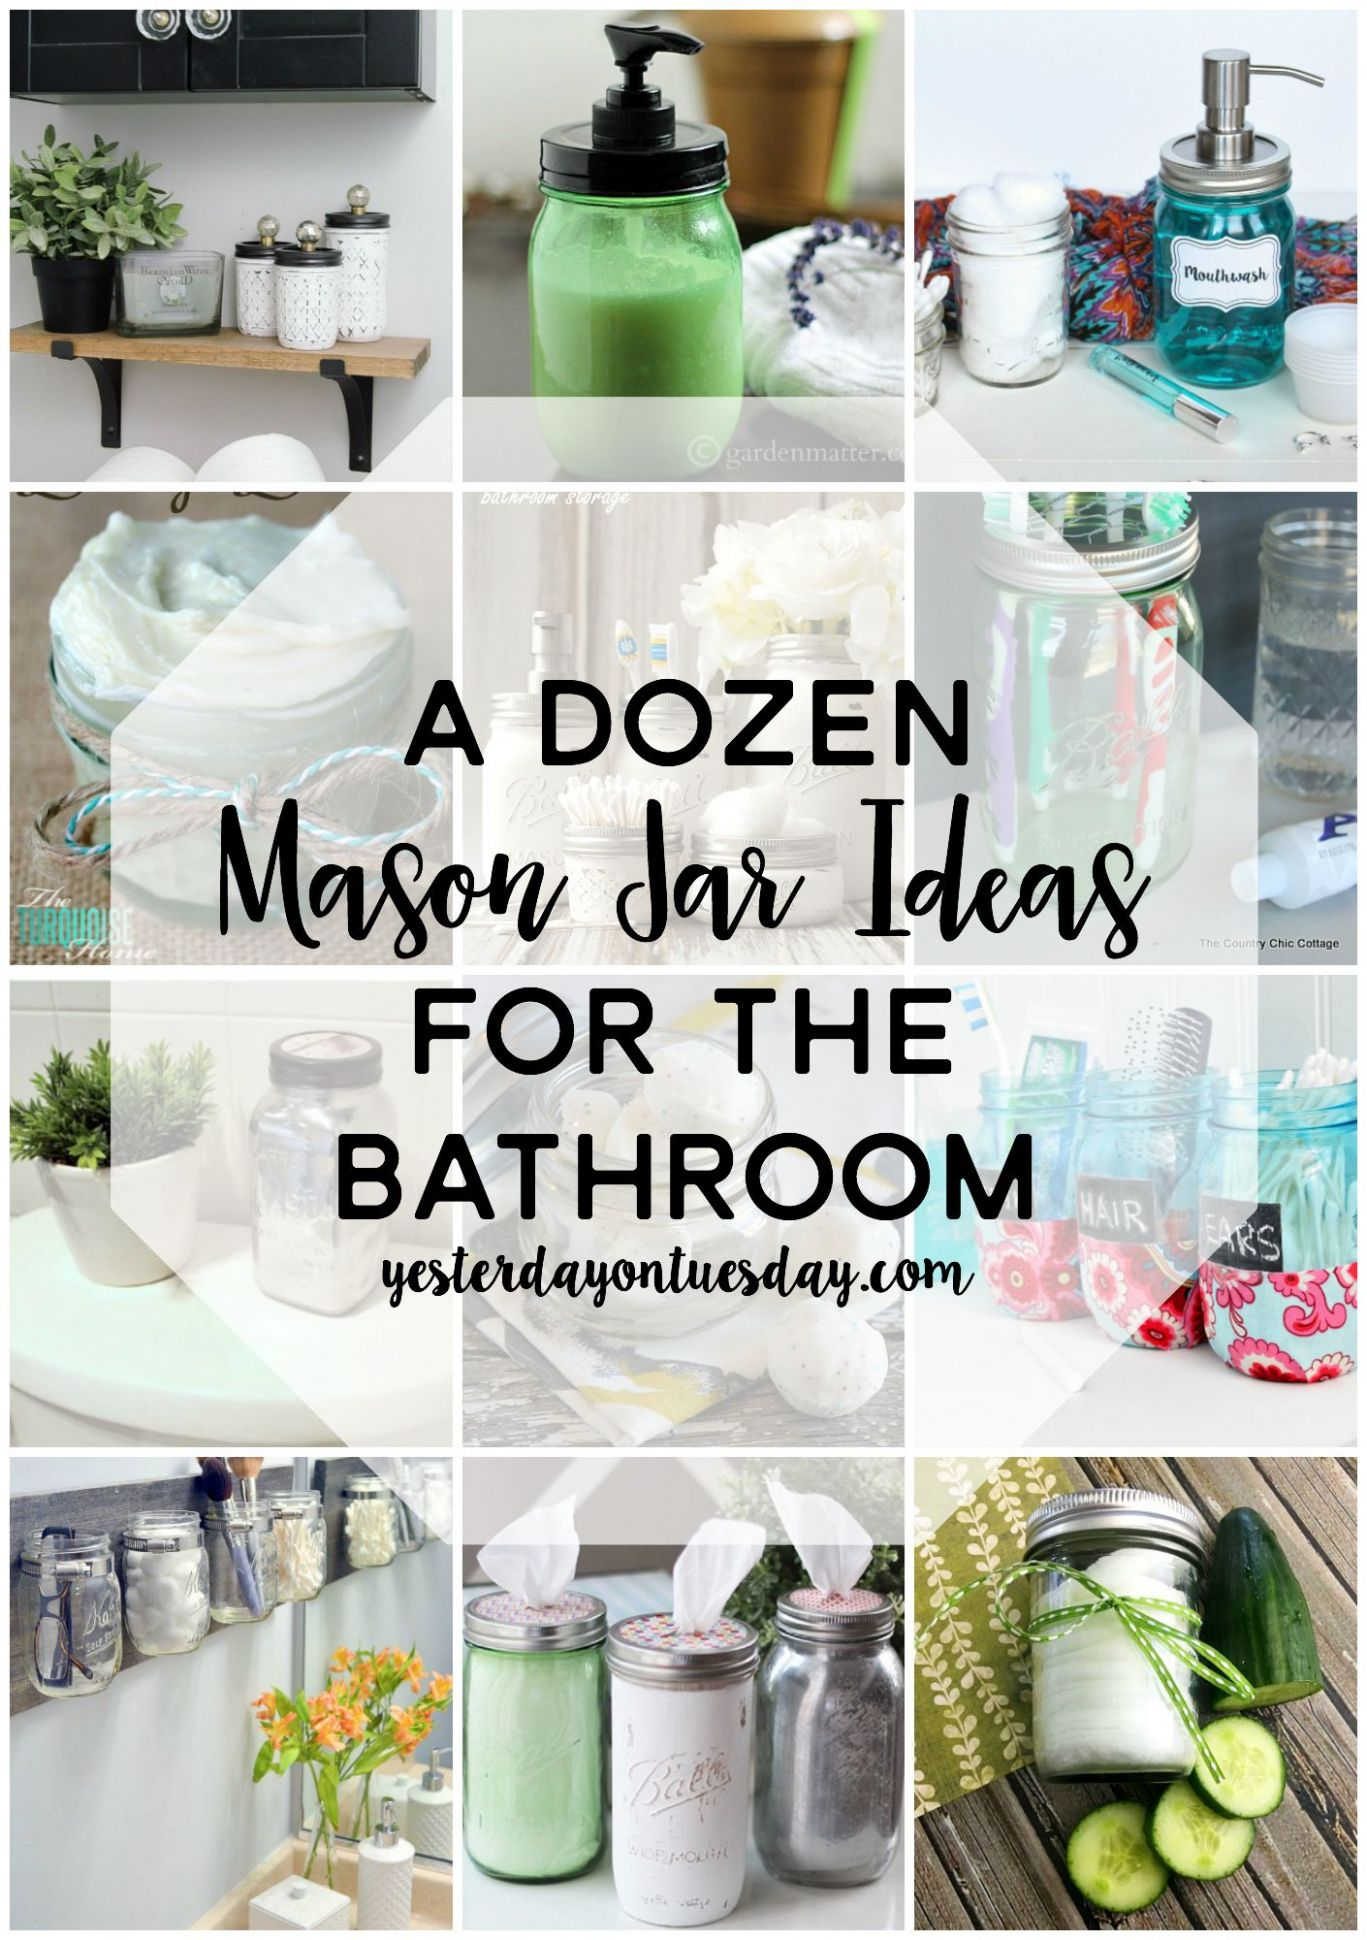 A Dozen Mason Jar Gifts for Teachers | Mason jar bathroom, Mason ...